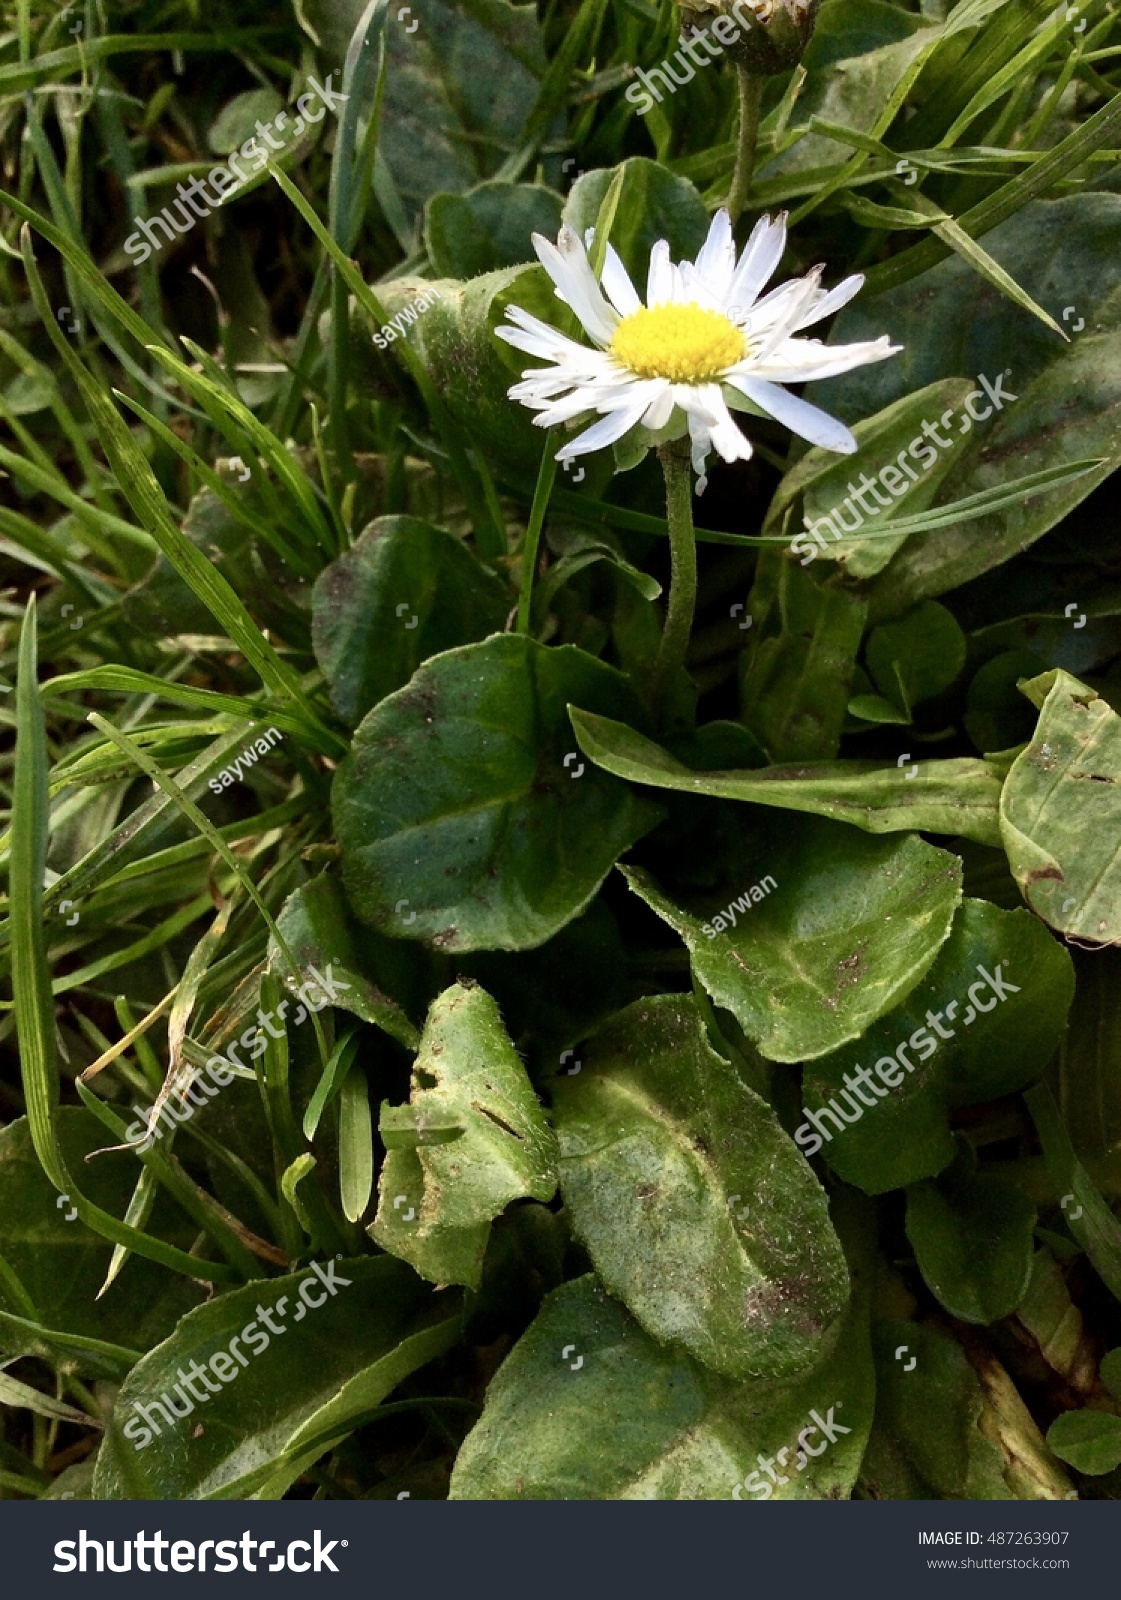 Daisy flower among leaves thorn stock photo edit now 487263907 daisy flower among the leaves thorn izmirmasajfo